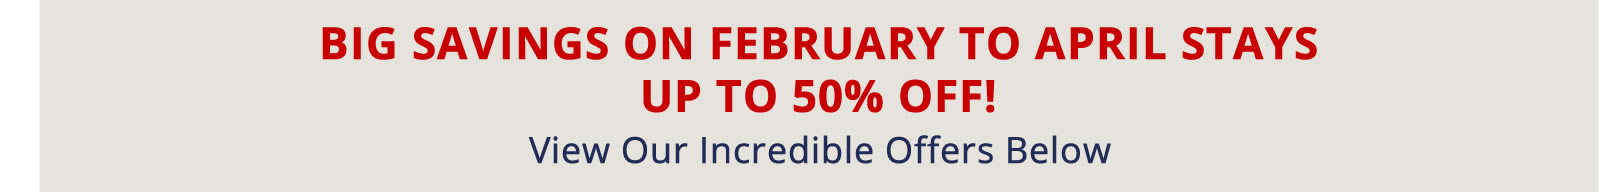 Book Now for Big Savings on February to April Stays. Up to 50% off!